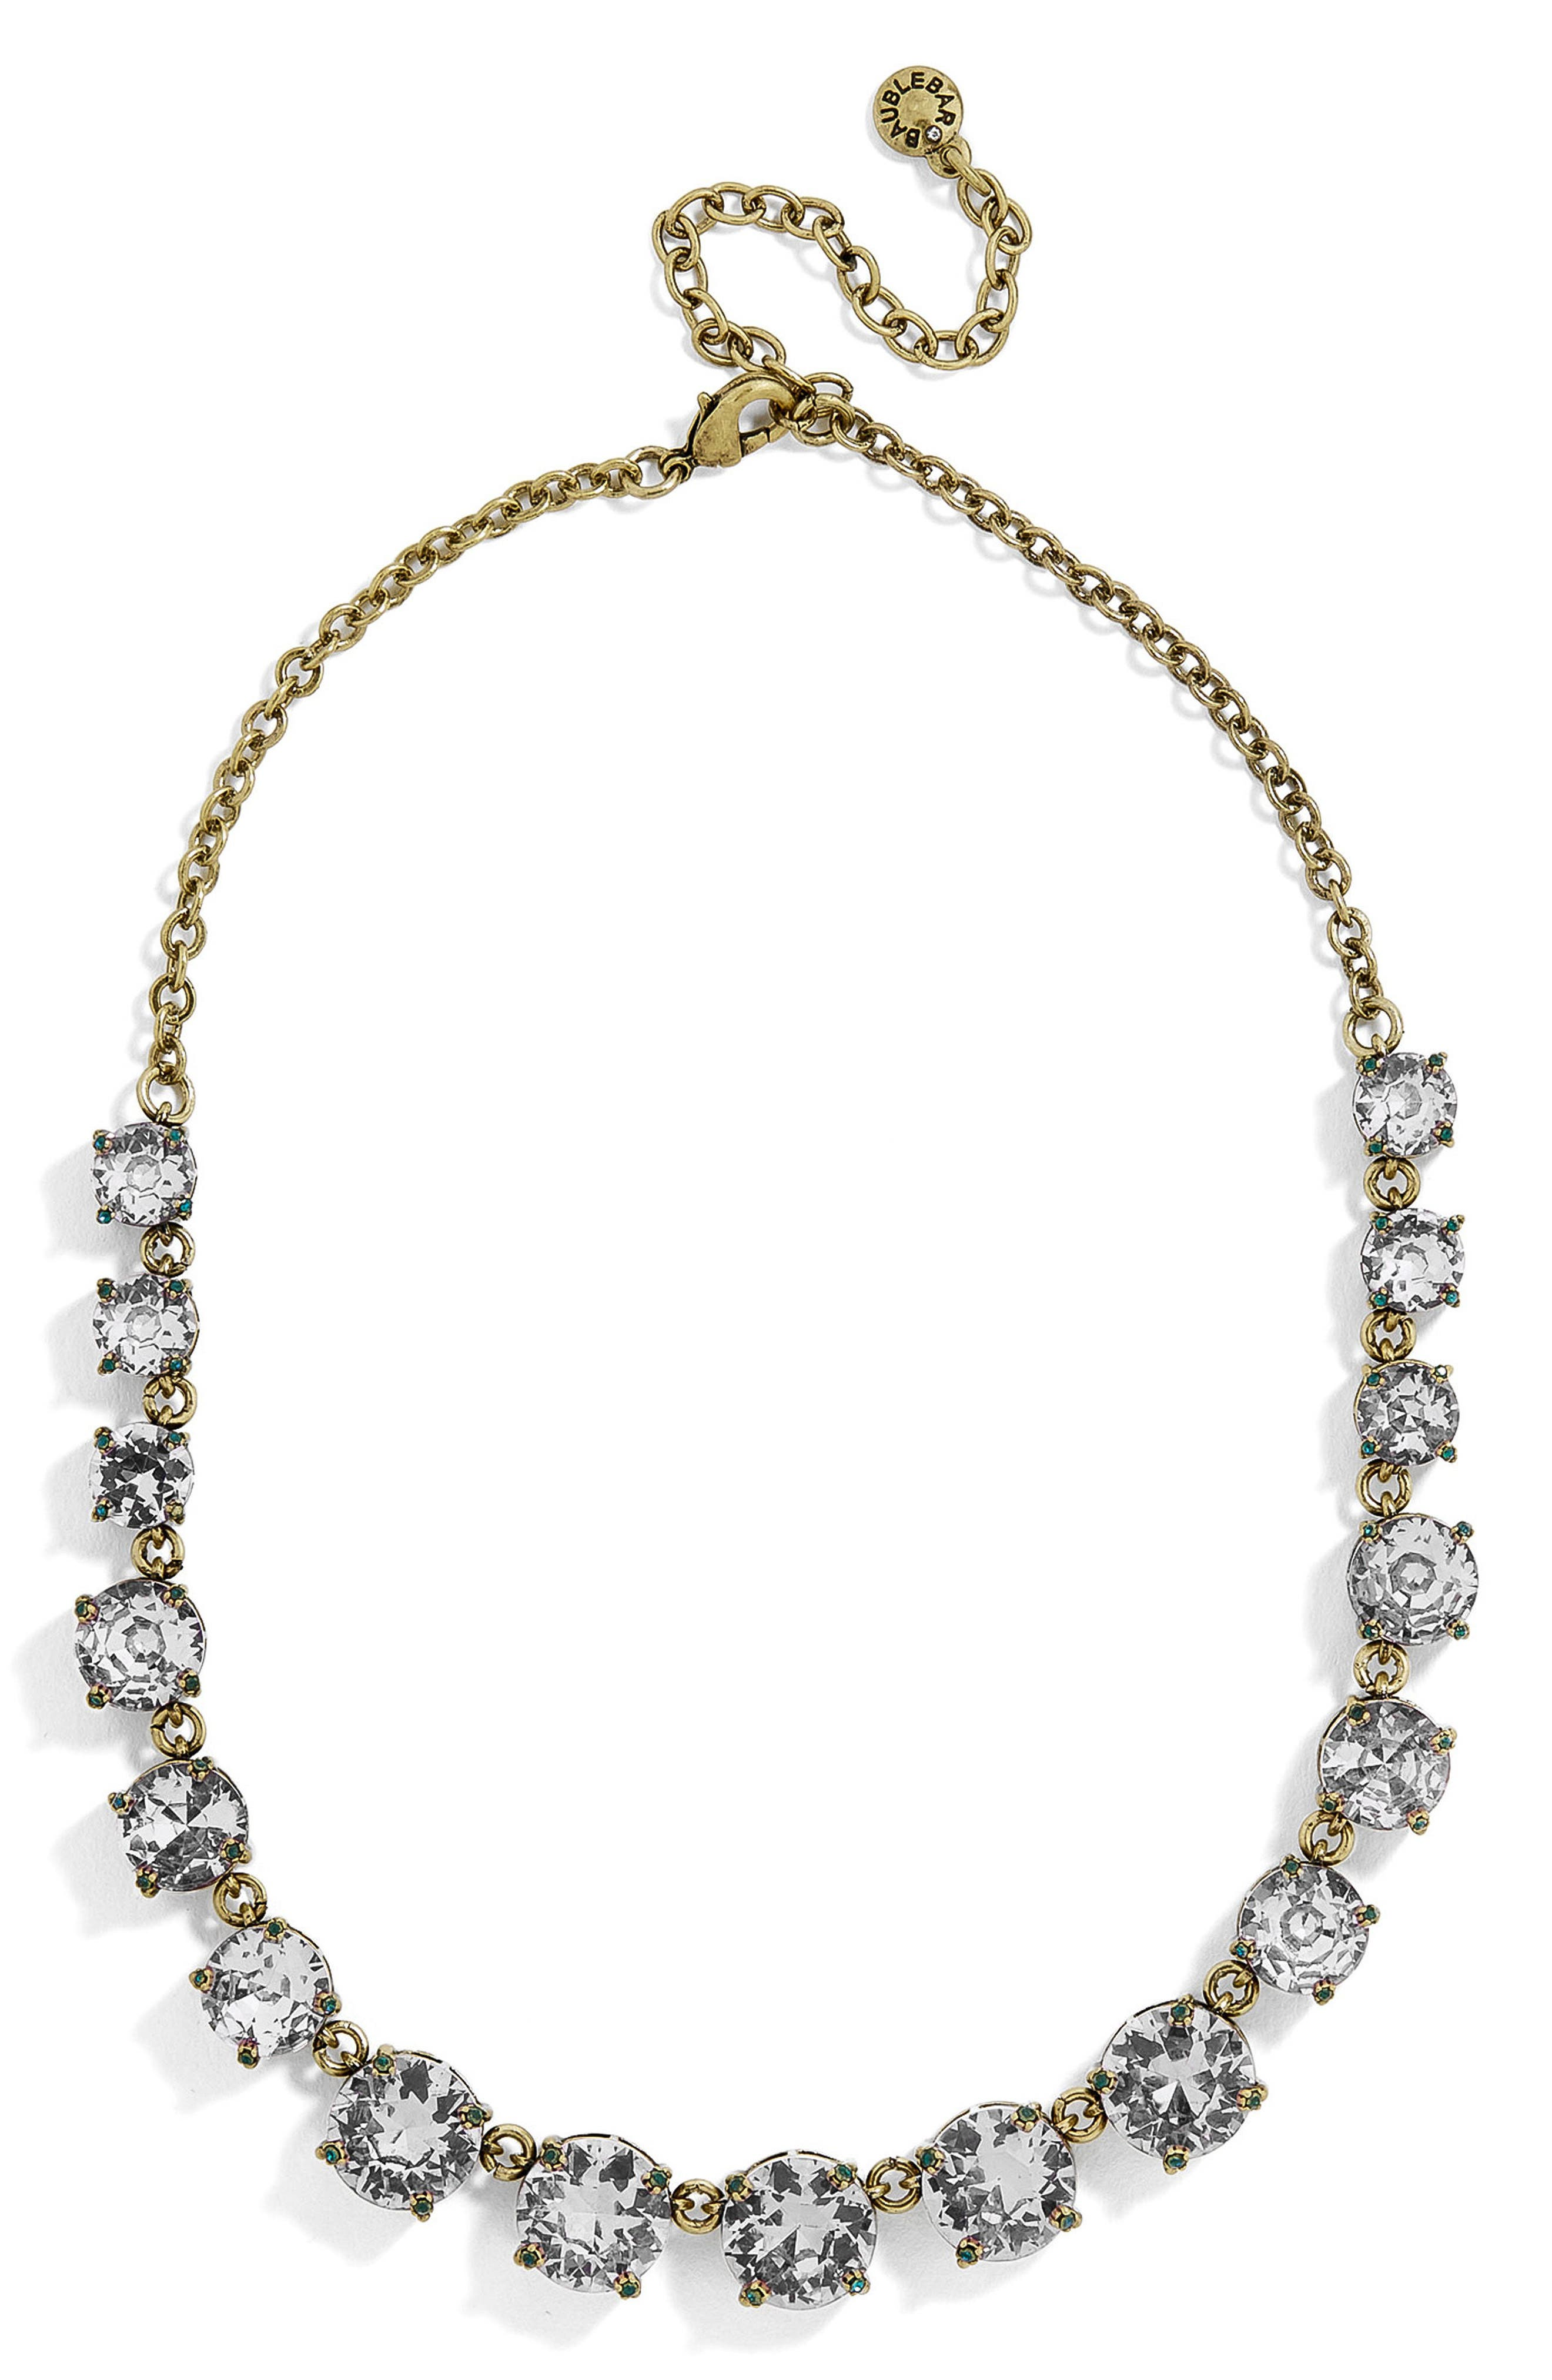 Main Image - BaubleBar Crystal Collar Necklace